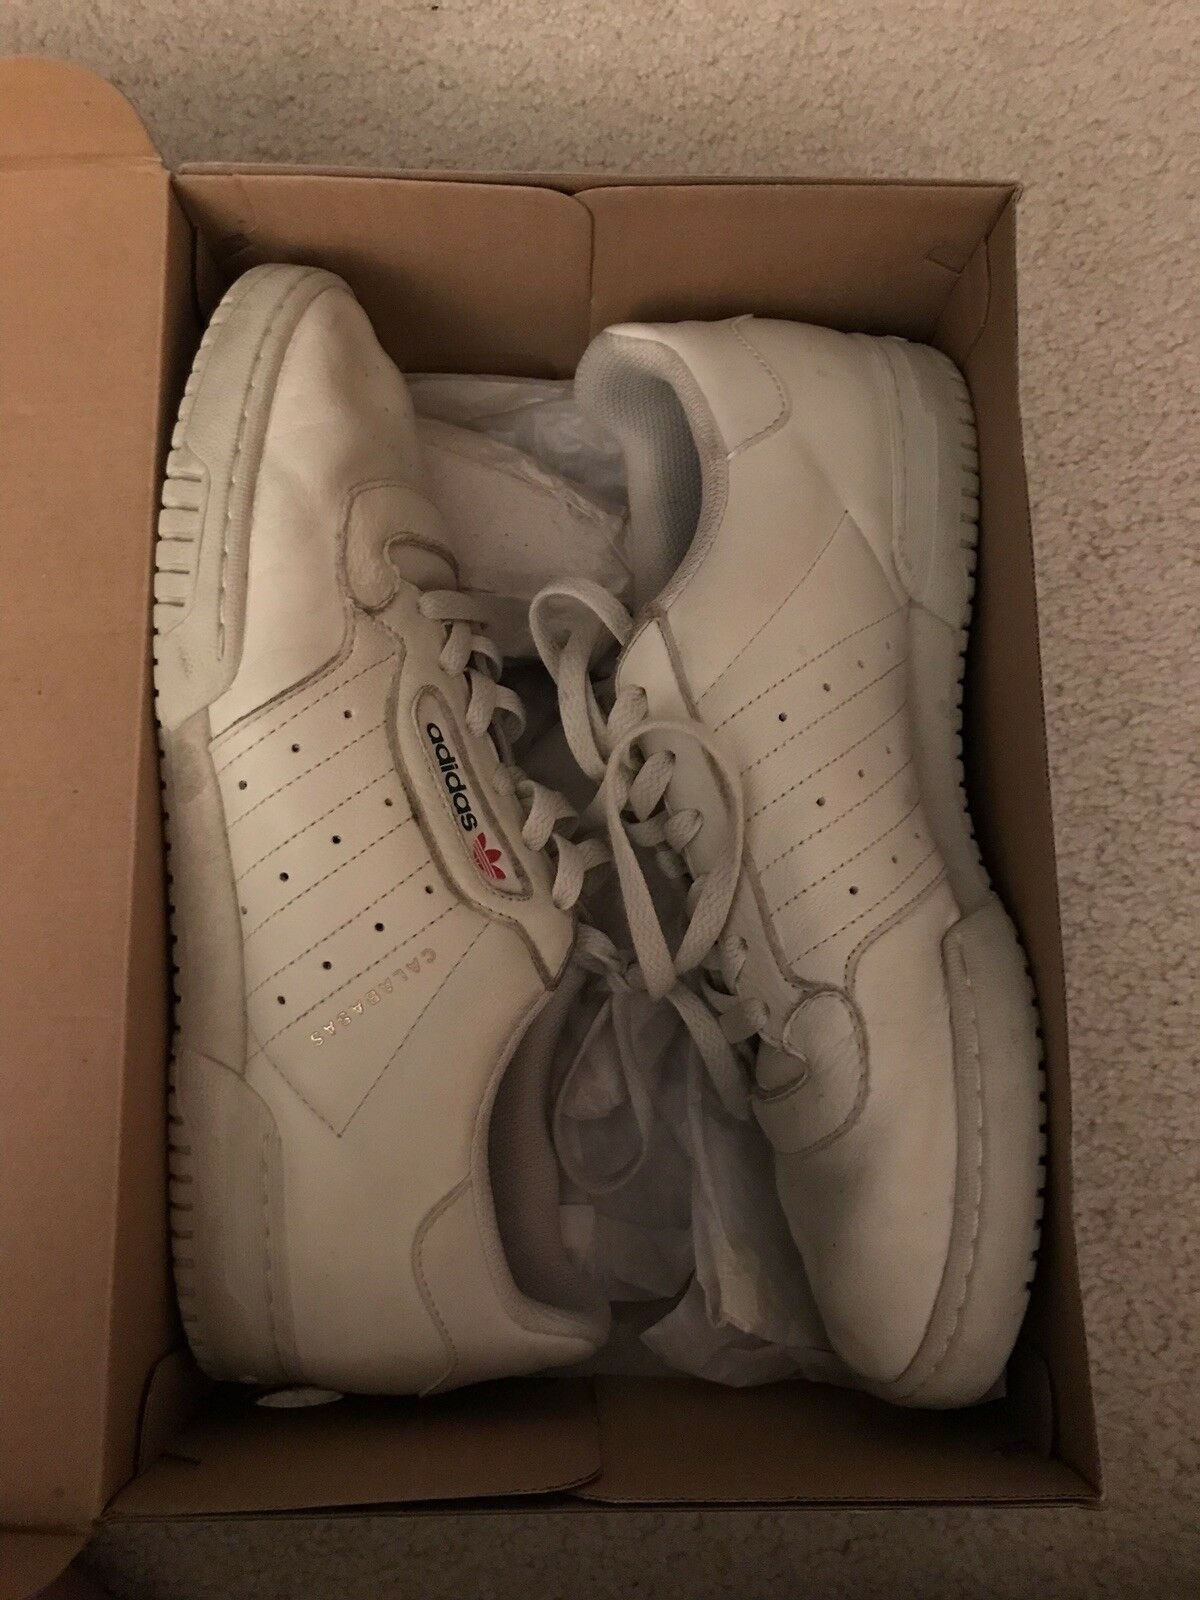 Adidas Yeezy Powerphase Calabasas White Mens Size 11 Used